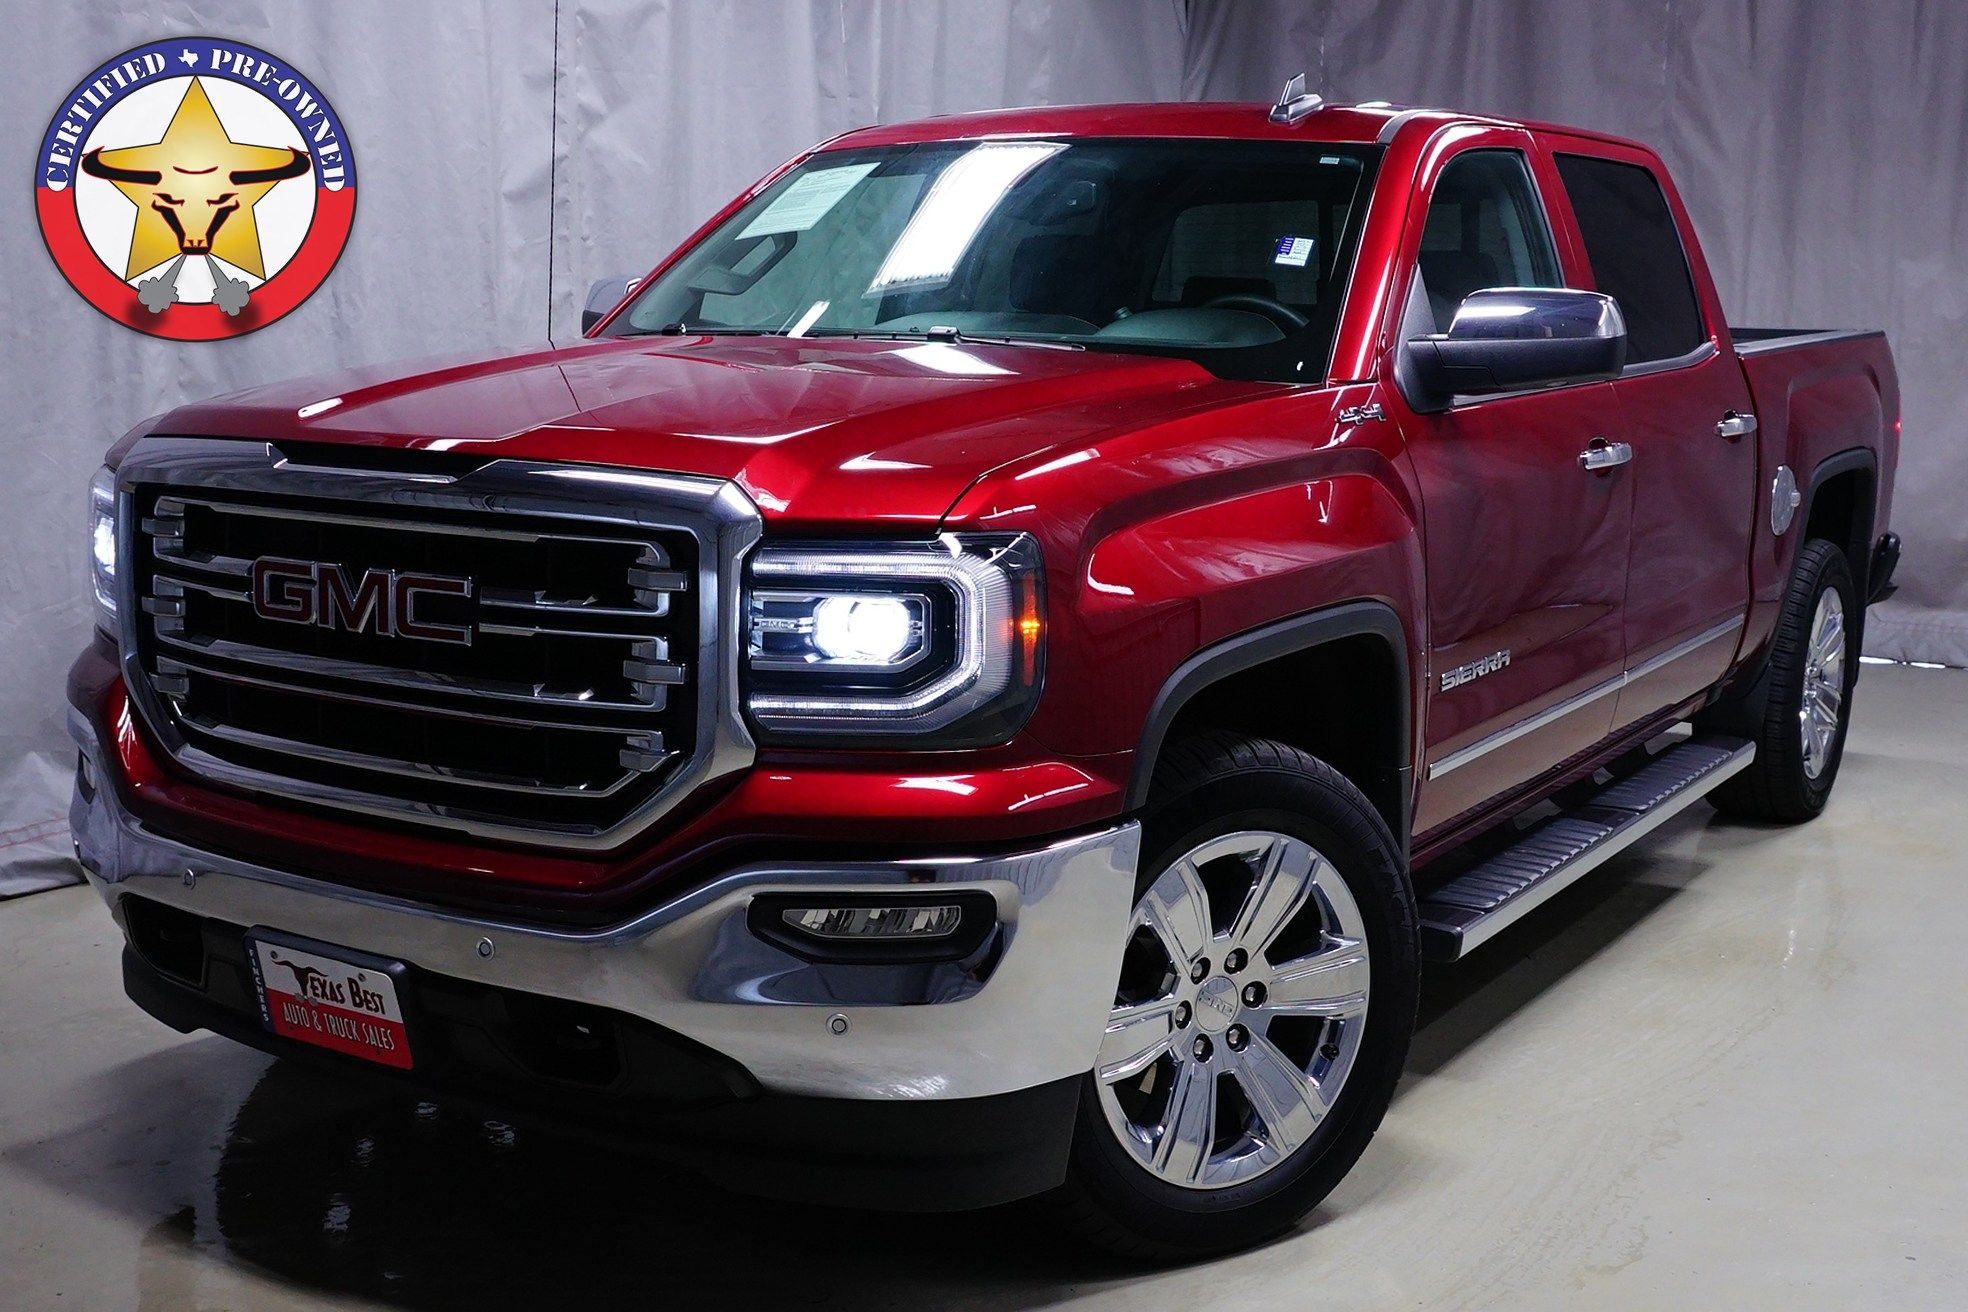 2017 Gmc Sierra 1500 Slt For Sale At Fincher S Texas Best Located In Houston Tx Call Now To Set Up A Test Drive Gmc Gmcsie Gmc Trucks Gmc Sierra 1500 Gmc